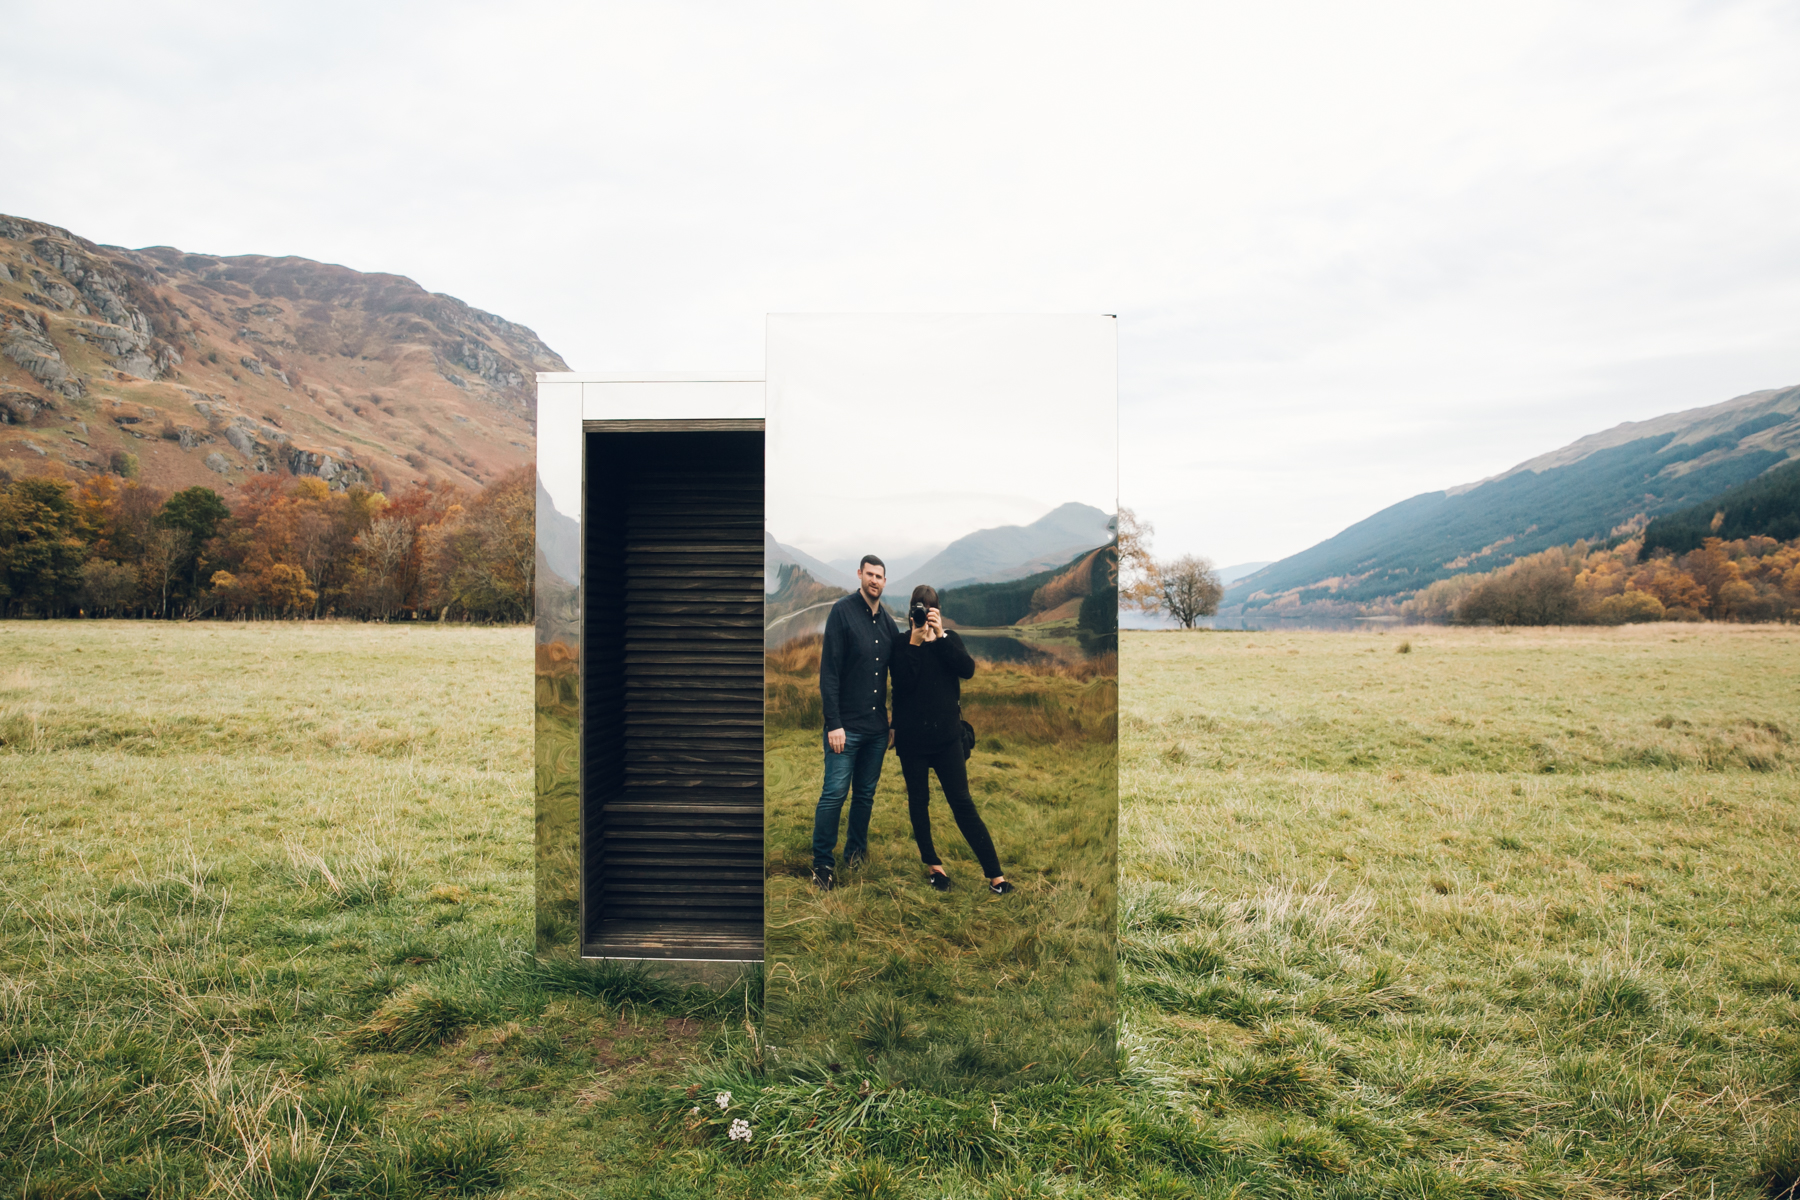 Selfie in the Loch Voil mirrored LookOut.